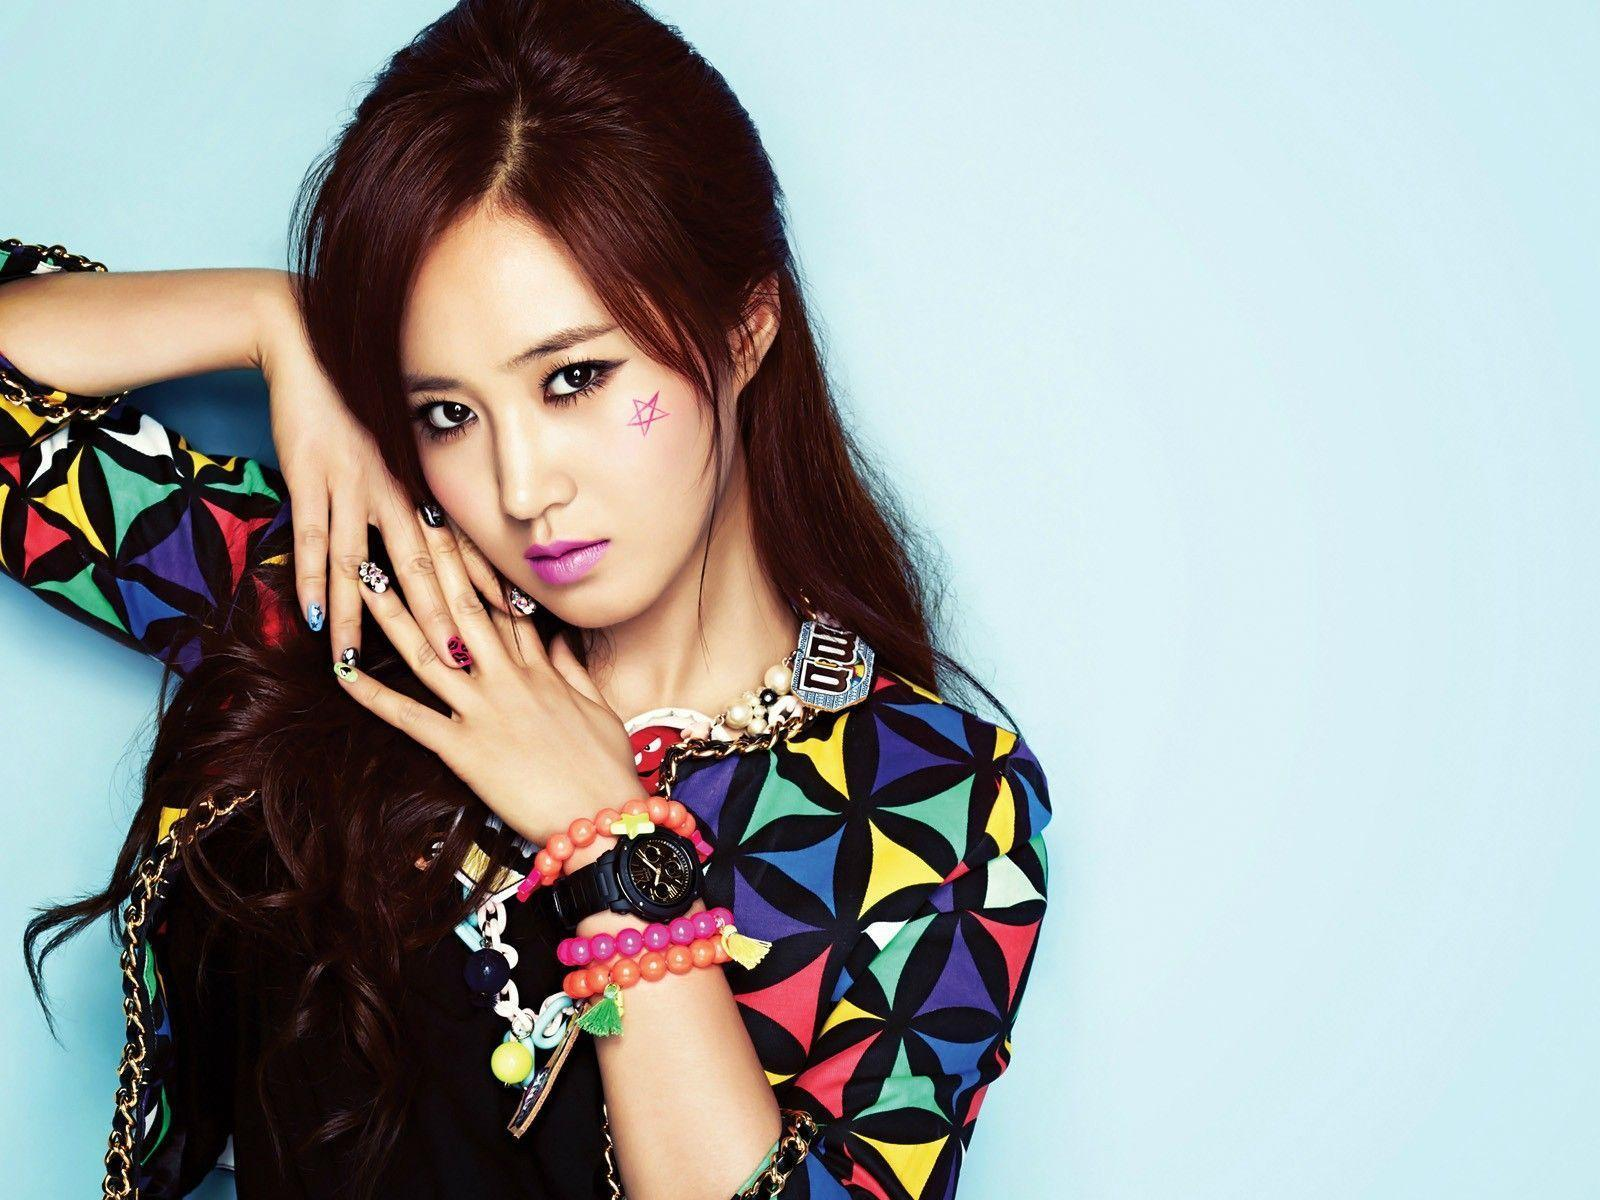 yuri snsd wallpaper 2013 - photo #10